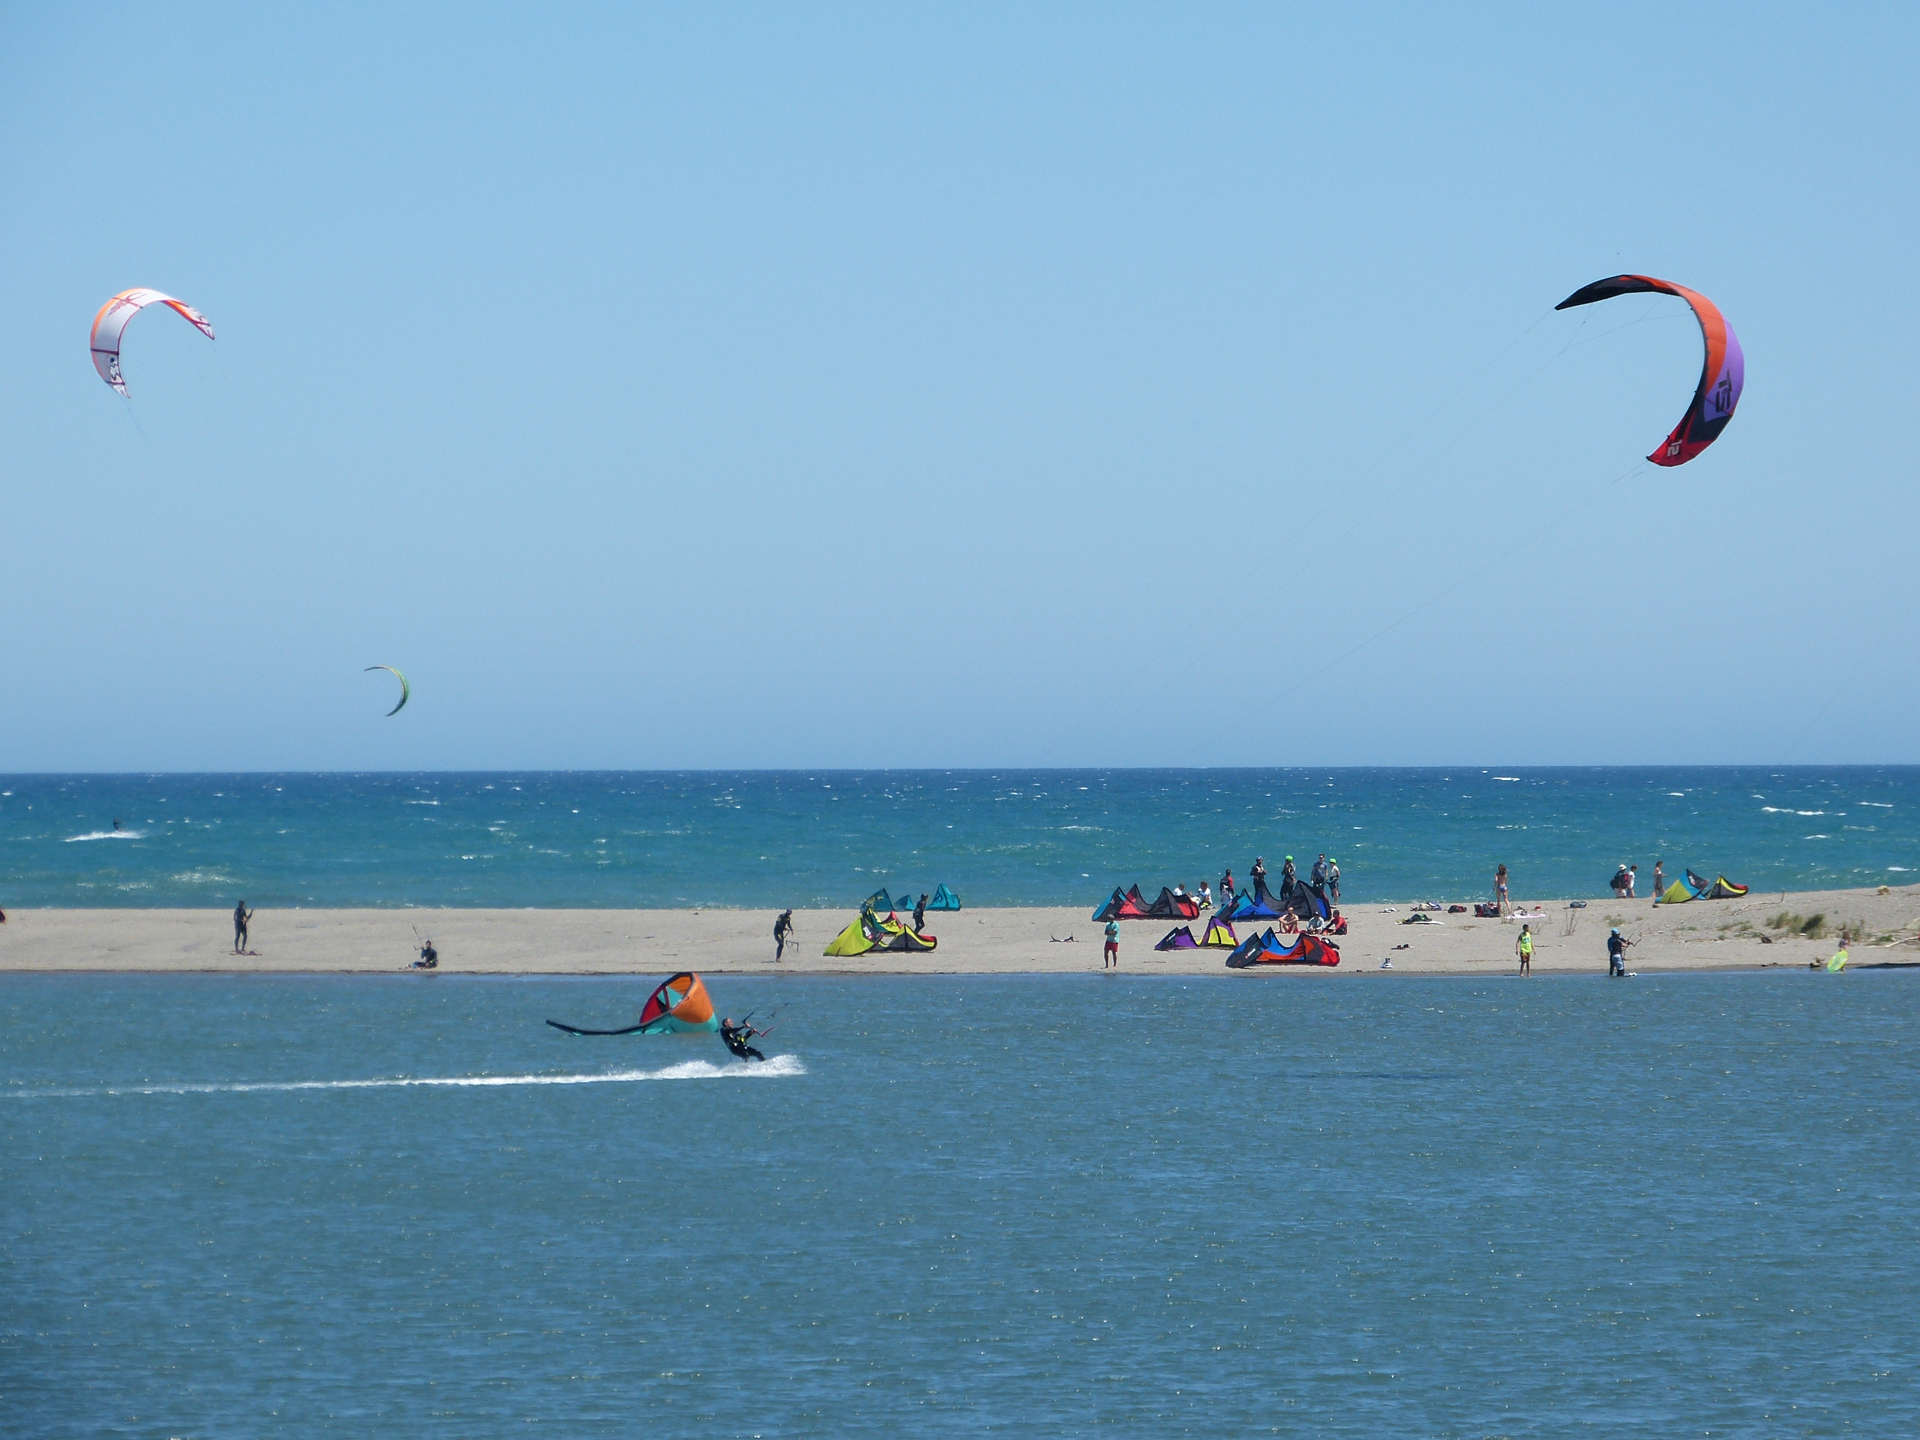 Kite surfers in Sotogrande